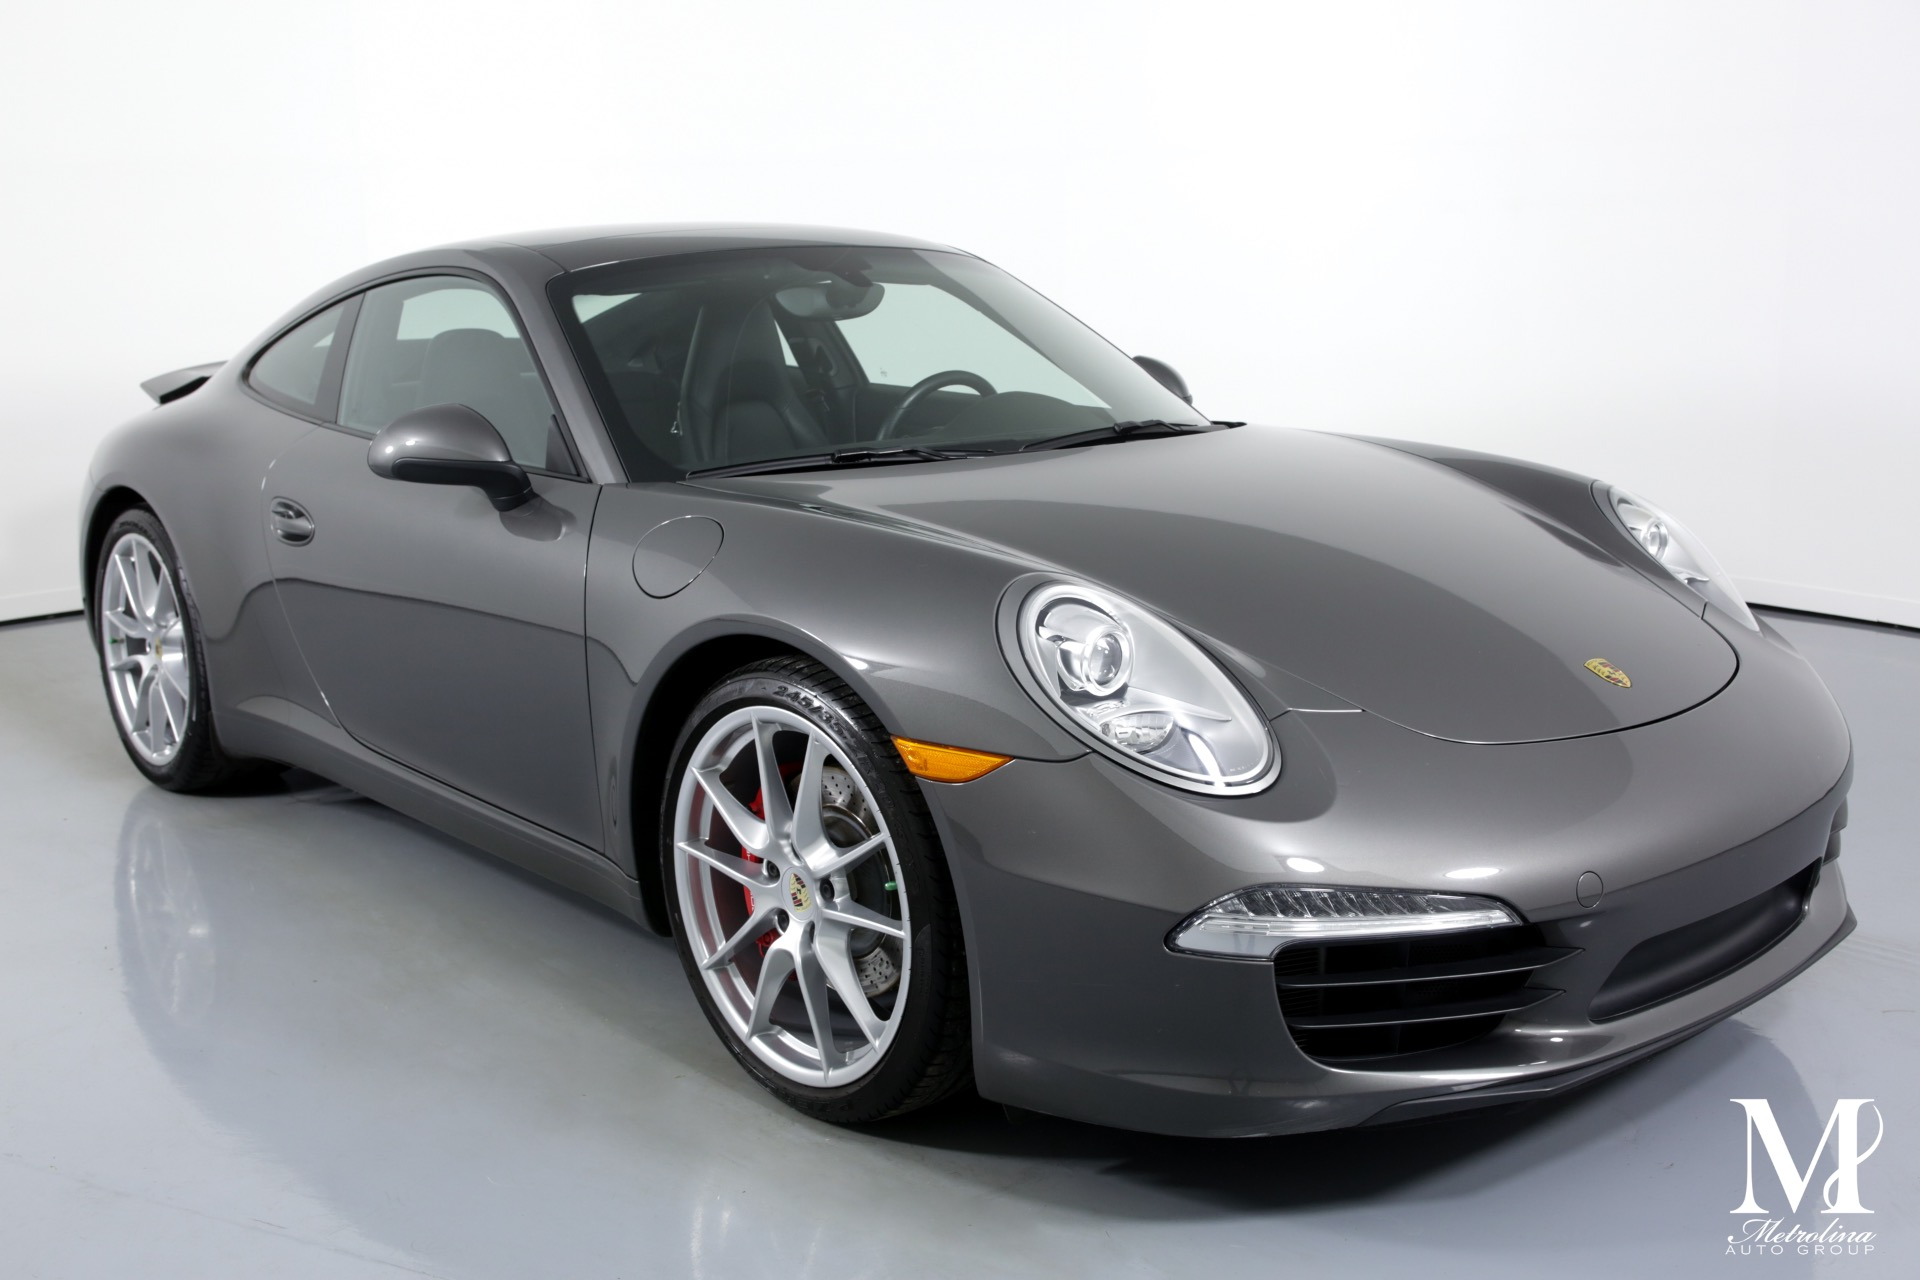 Used 2012 Porsche 911 Carrera S for sale Sold at Metrolina Auto Group in Charlotte NC 28217 - 2